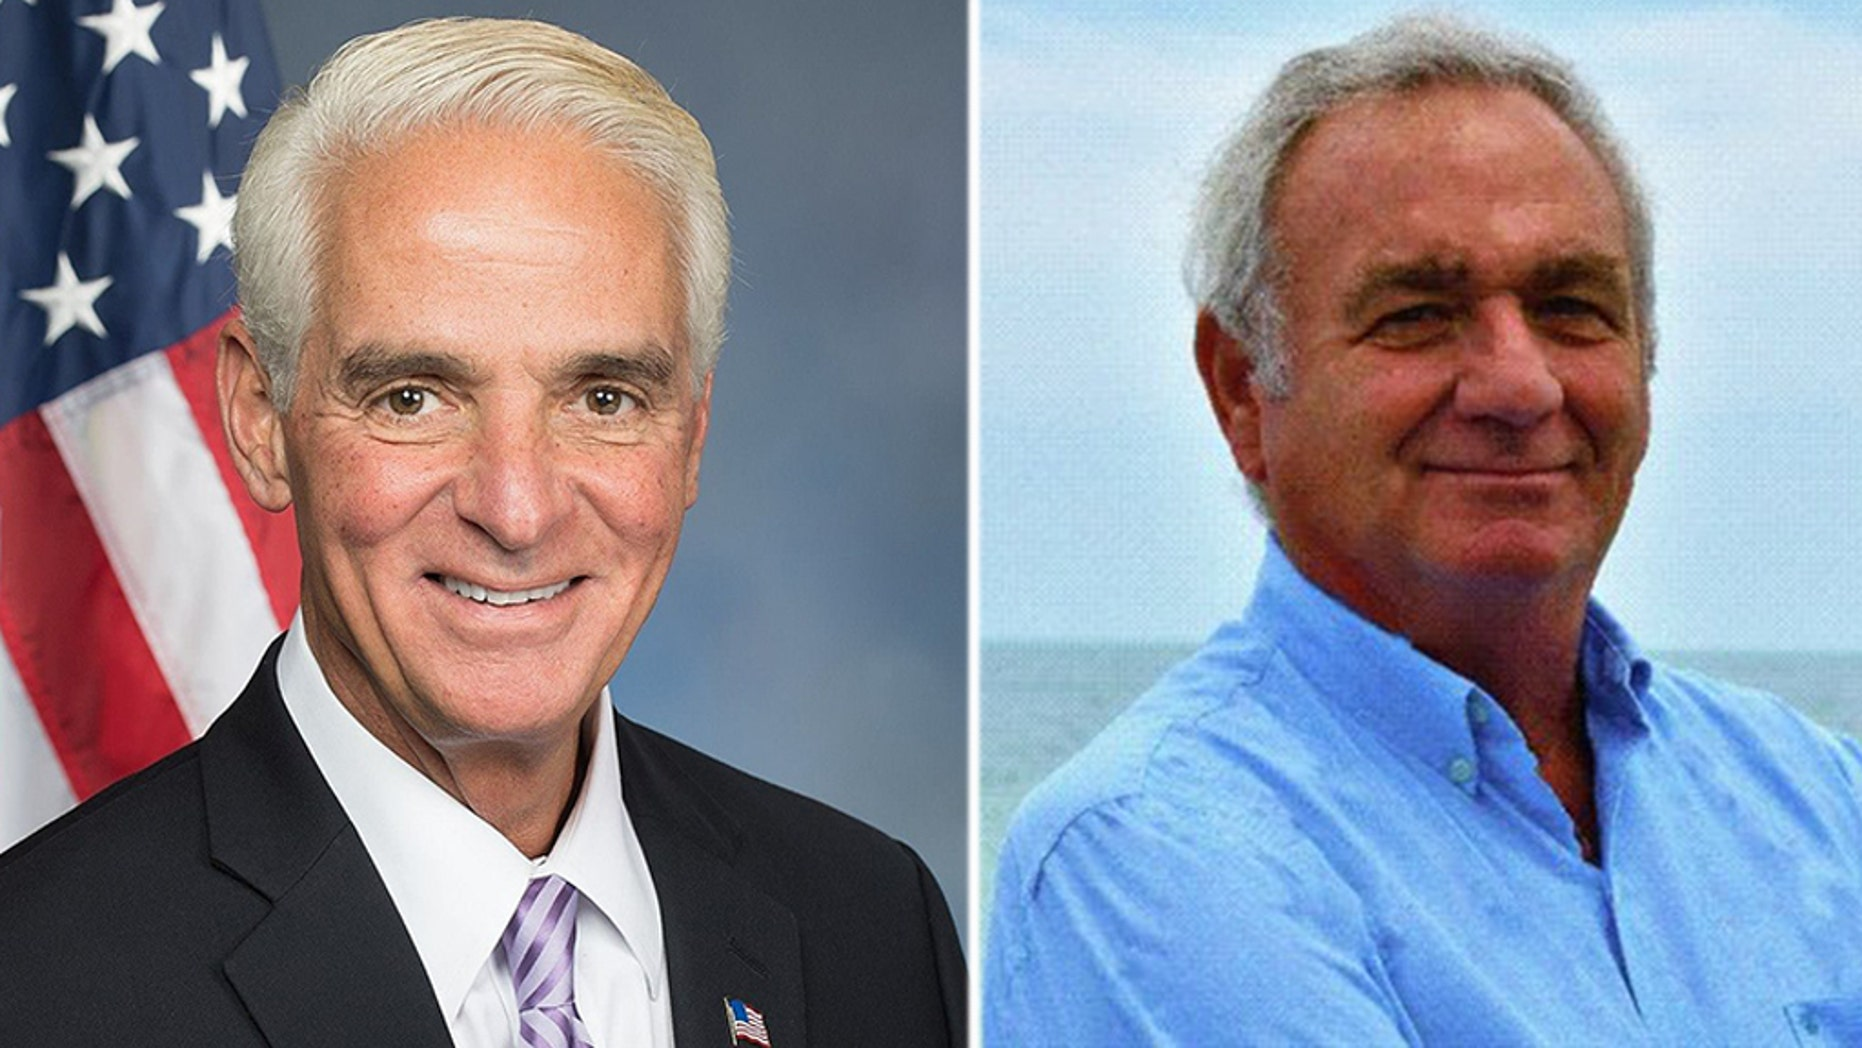 Charlie Crist (left) has won re-election to Florida's district representing St. Petersburg and Clearwater, beating Republican challenger George Buck